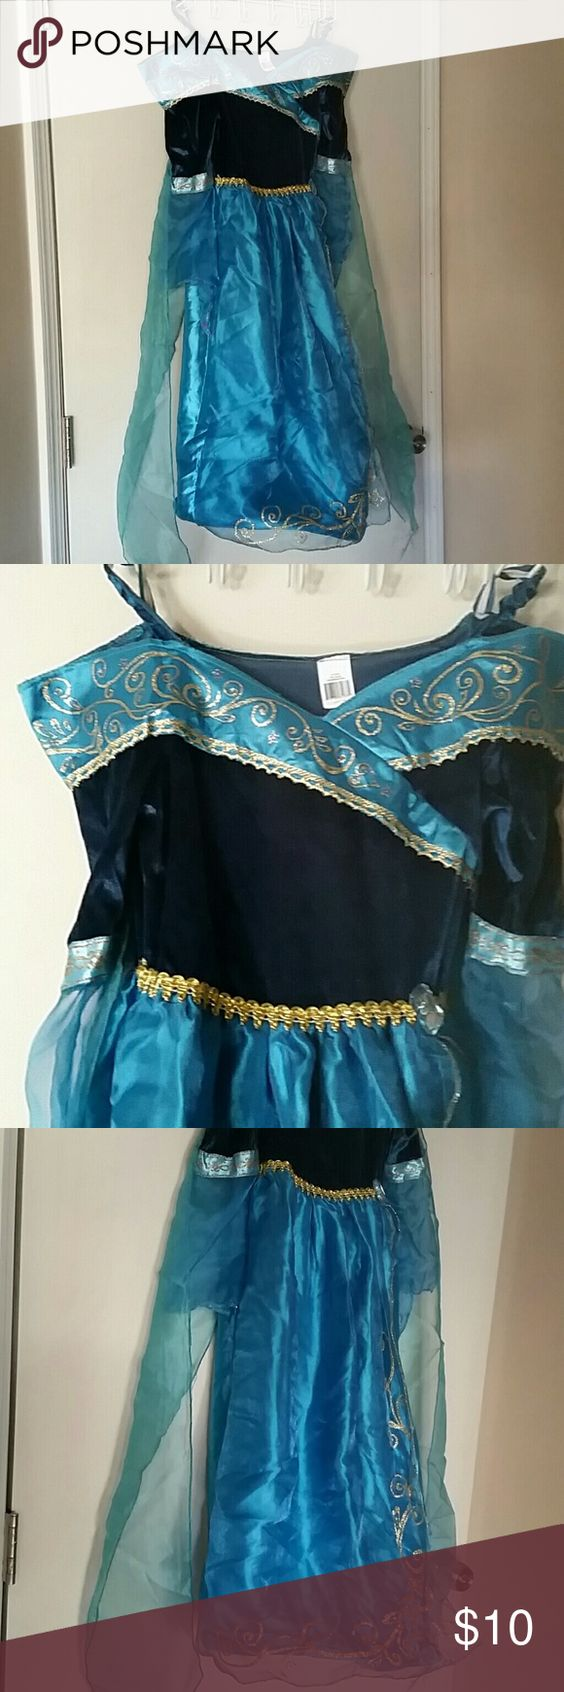 Kids costume Princess Merida classic costume with hoop skirt on the bottom. Worn once Costumes Halloween